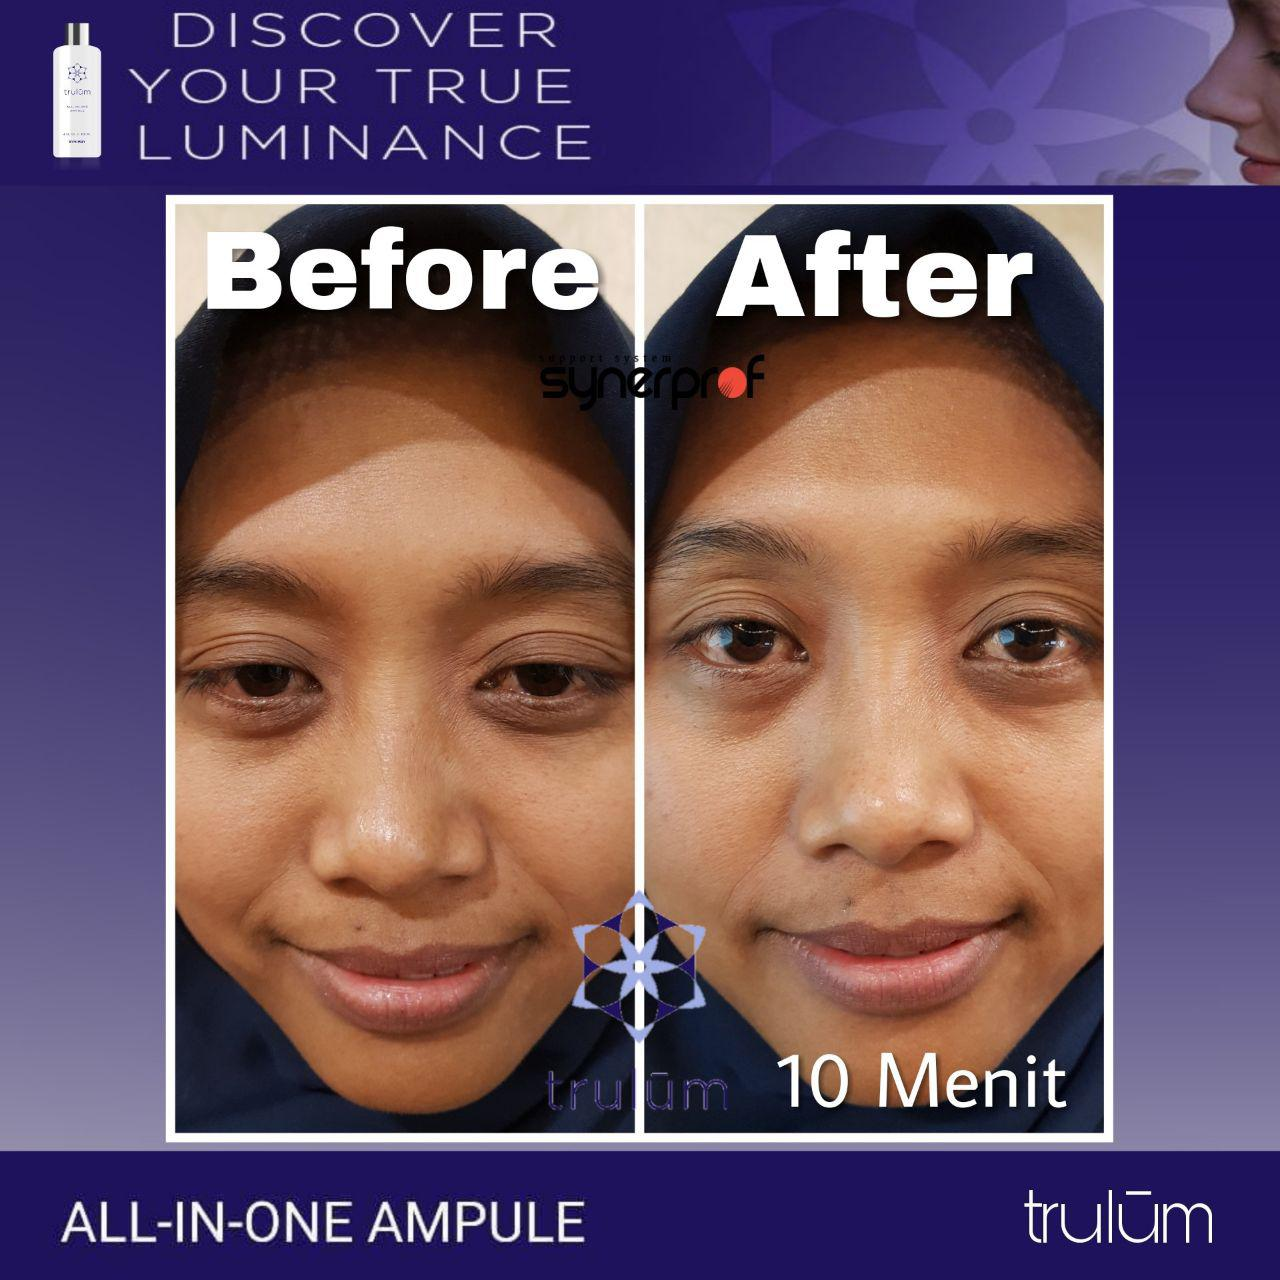 Jual Trulum All In One Ampoule Di Panti, Jember WA: 08112338376